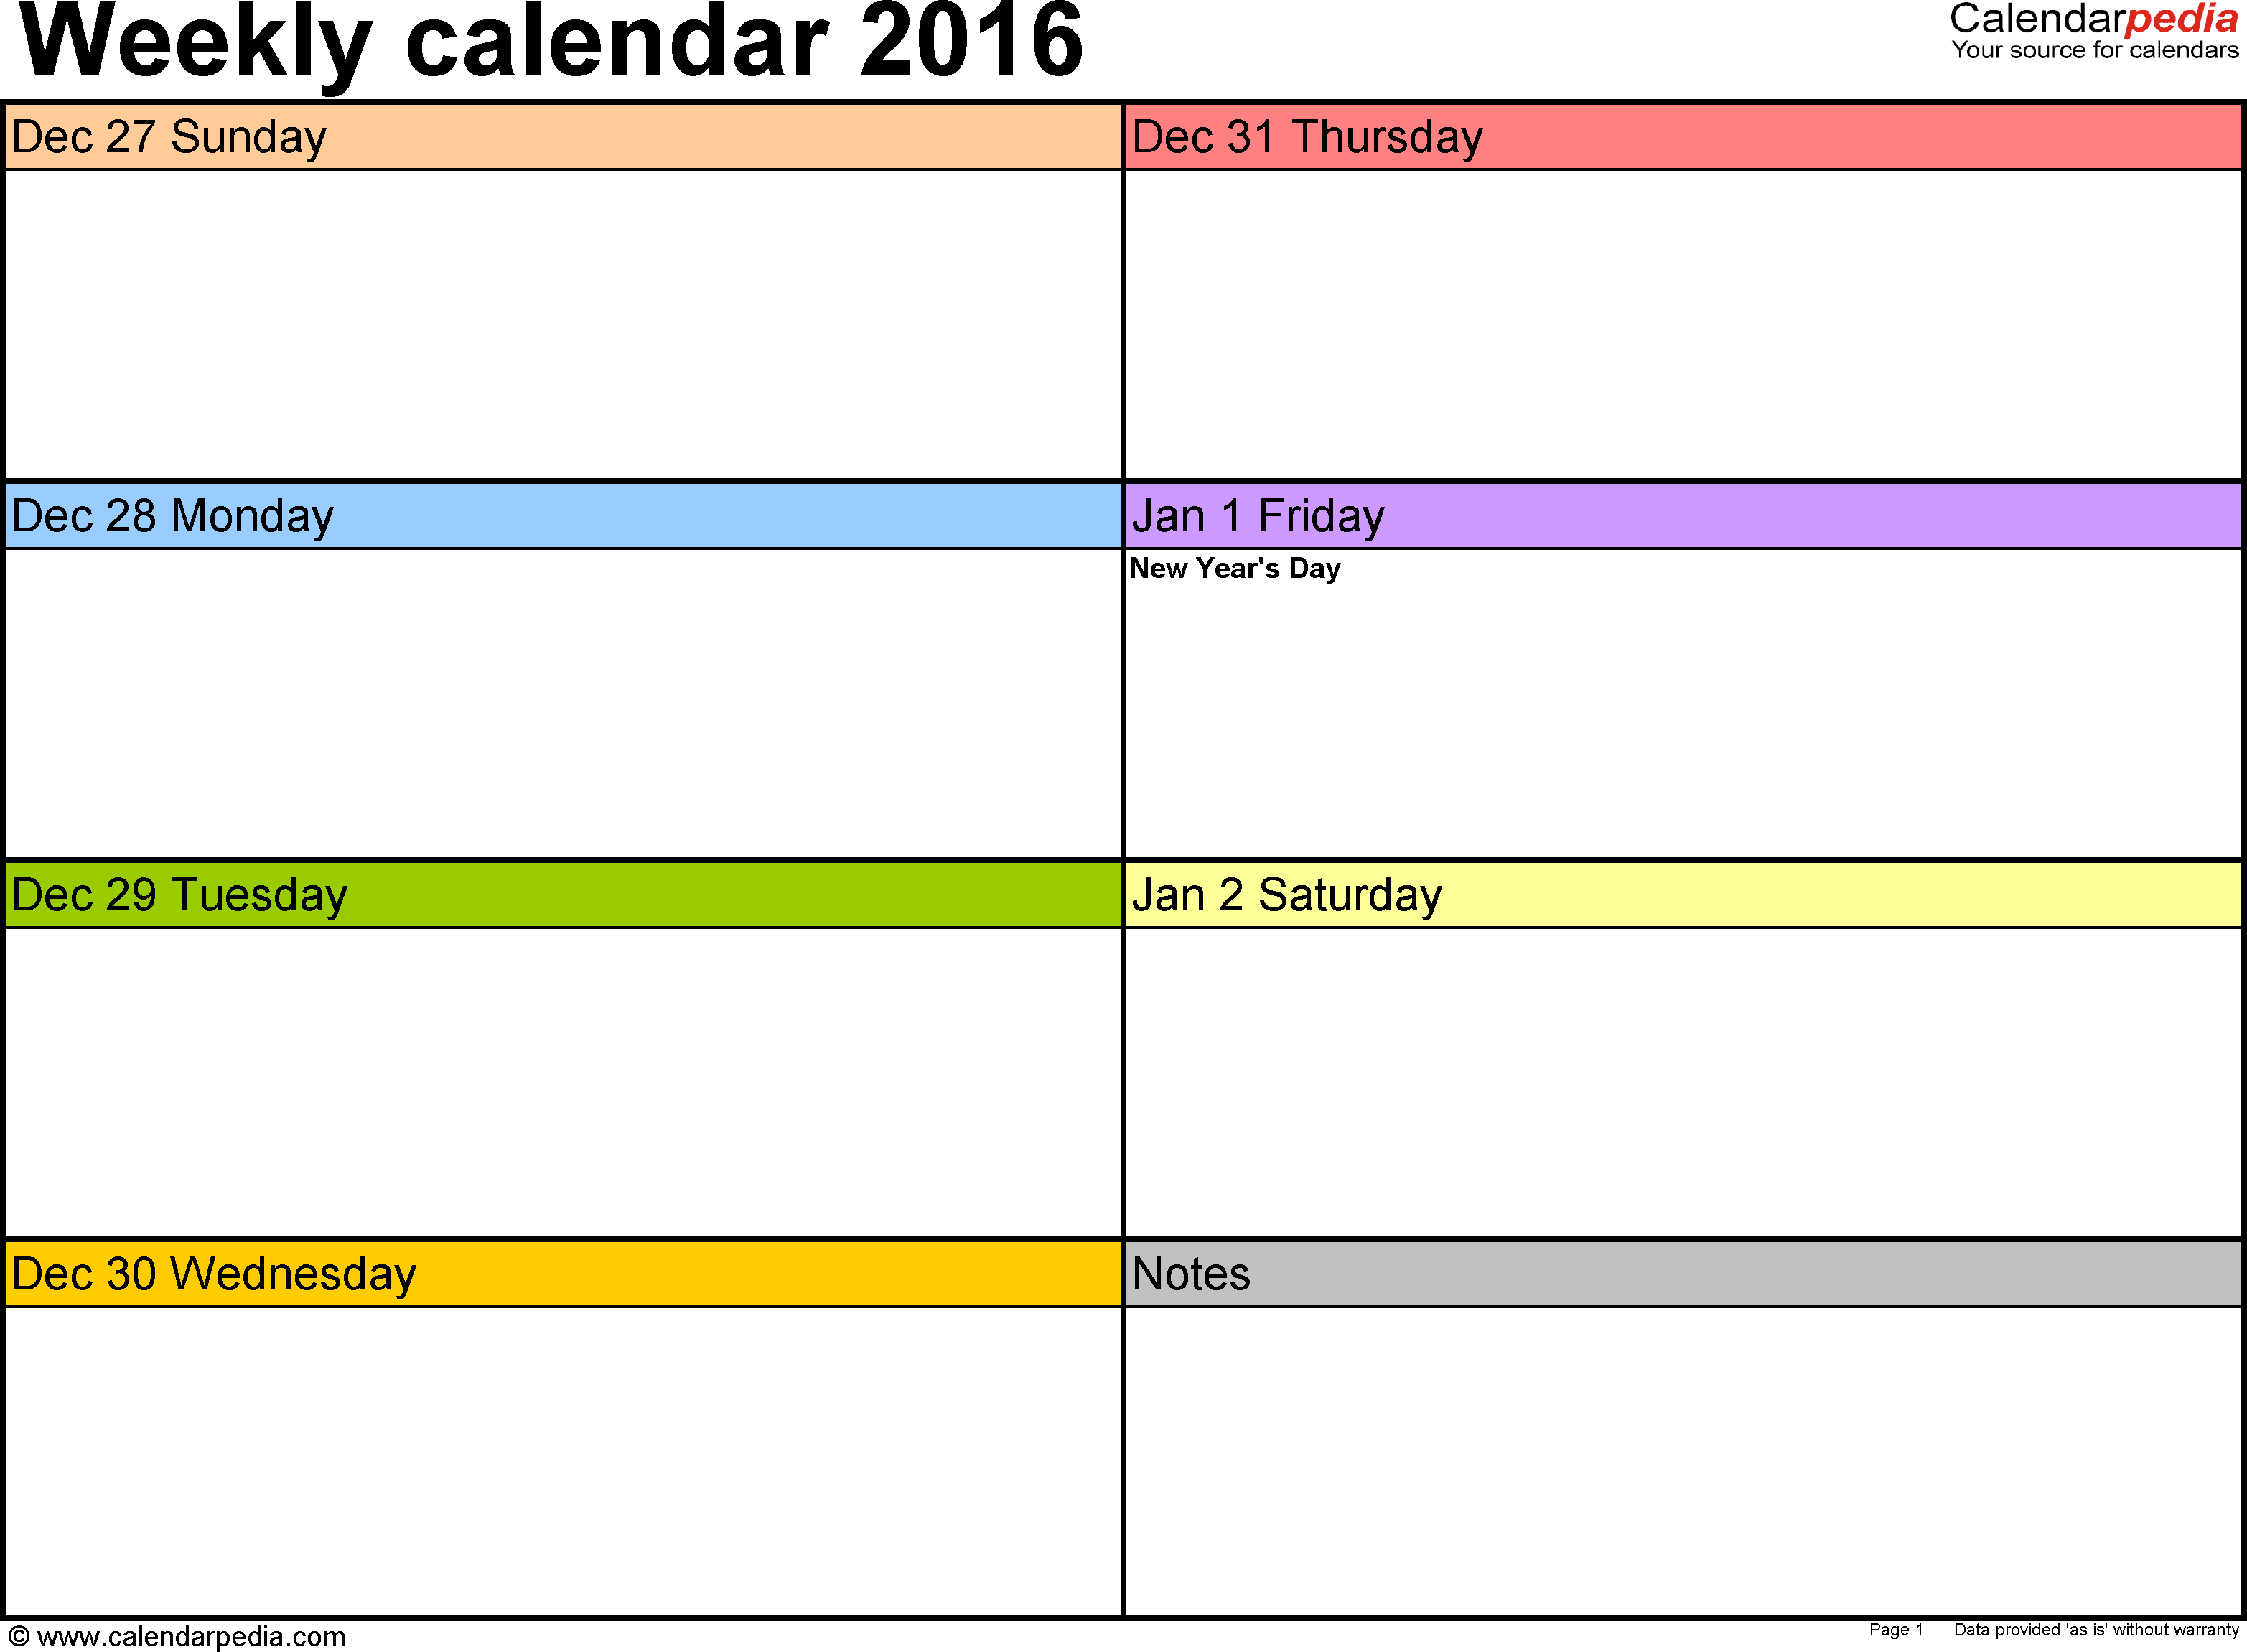 Weekly calendar 2016: template for PDF version 6, landscape, 53 pages, in color, week divided into 2 columns (7 days and one field for notes)